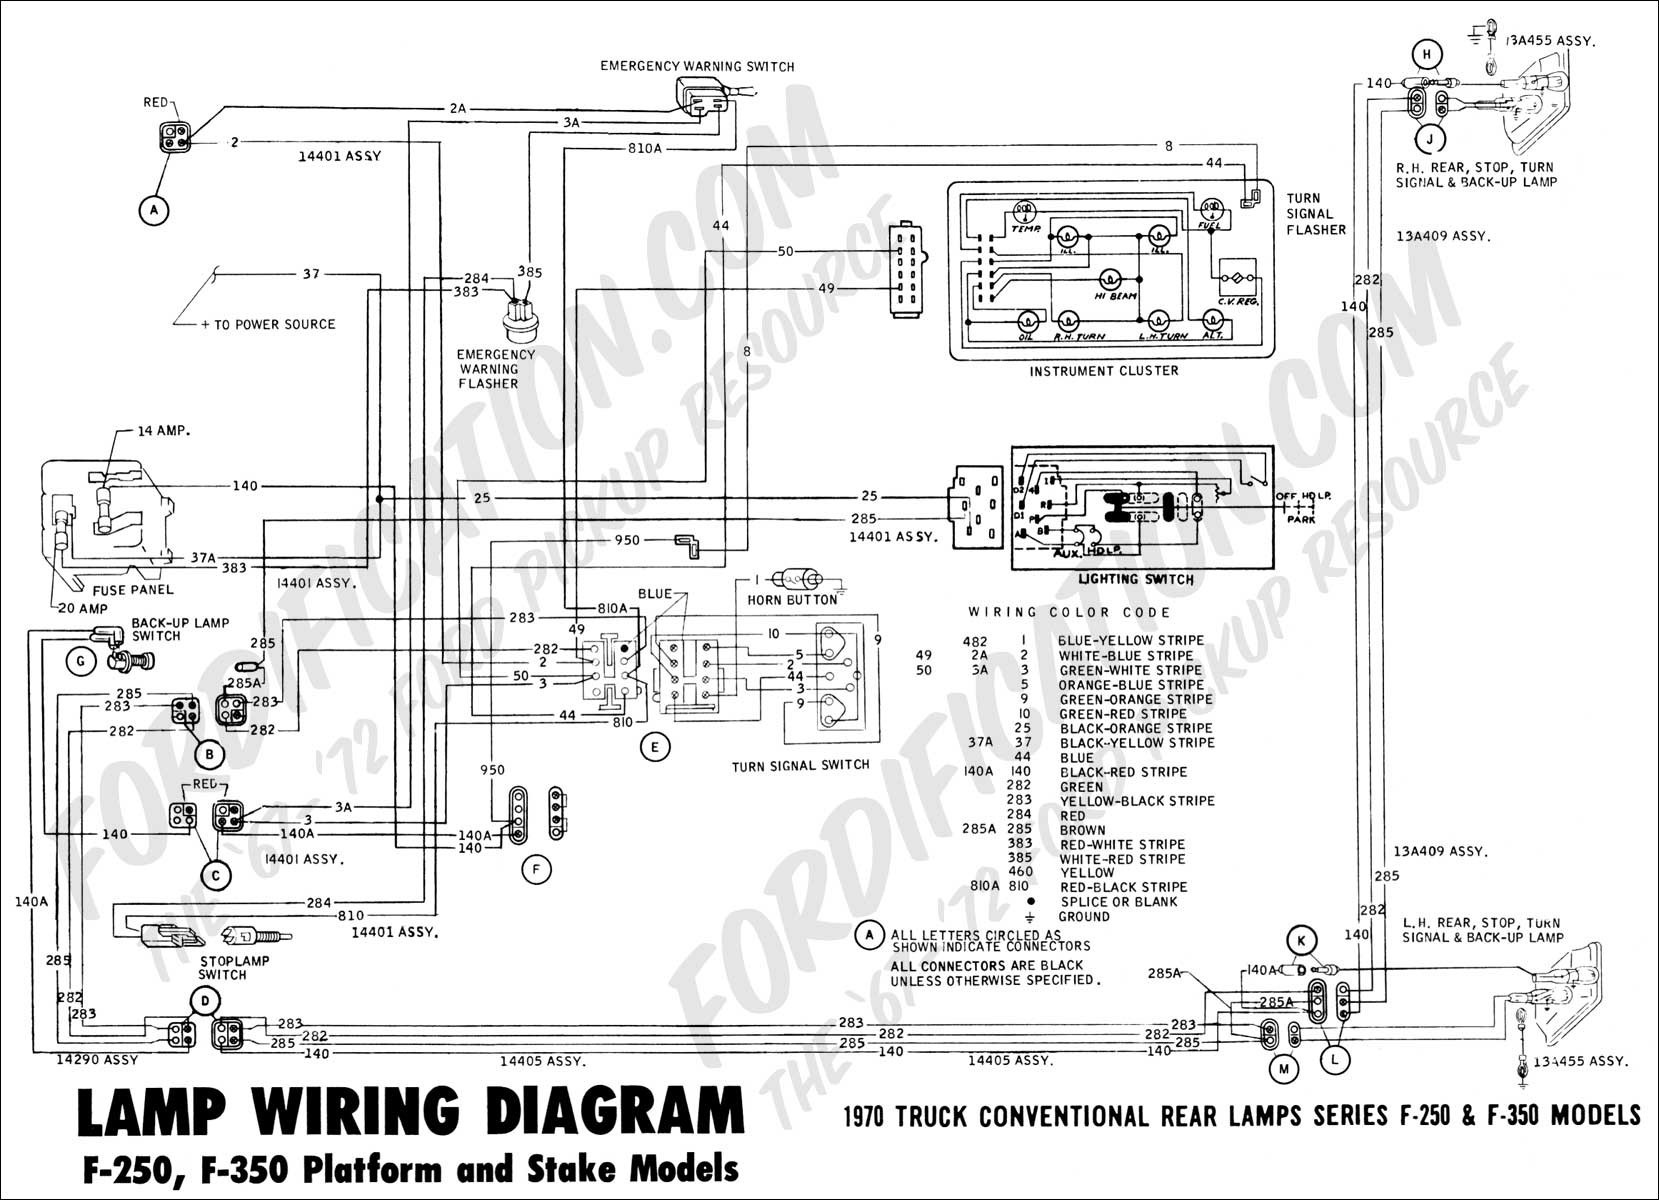 1982 f150 tail light wiring